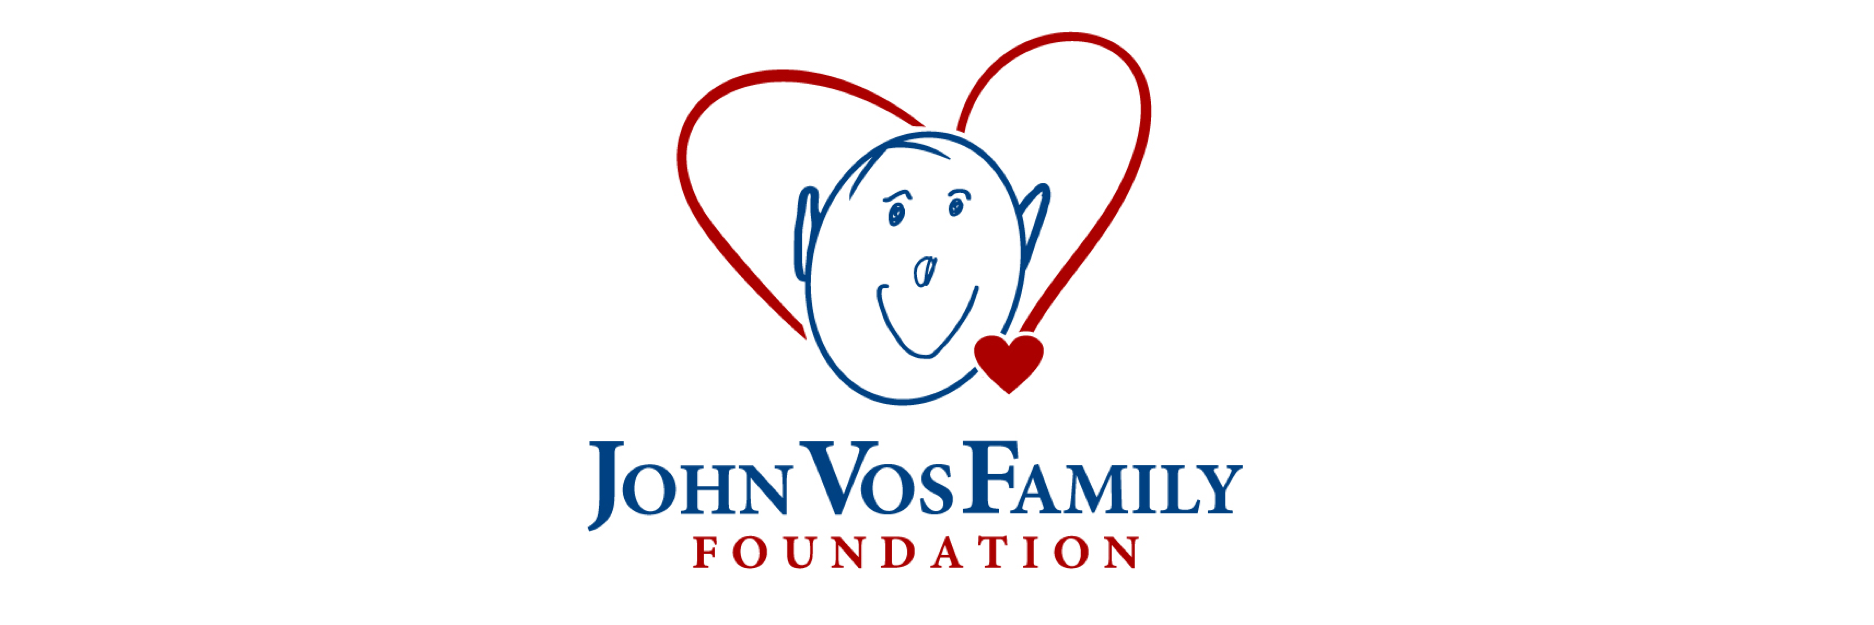 John Vos Family Foundation